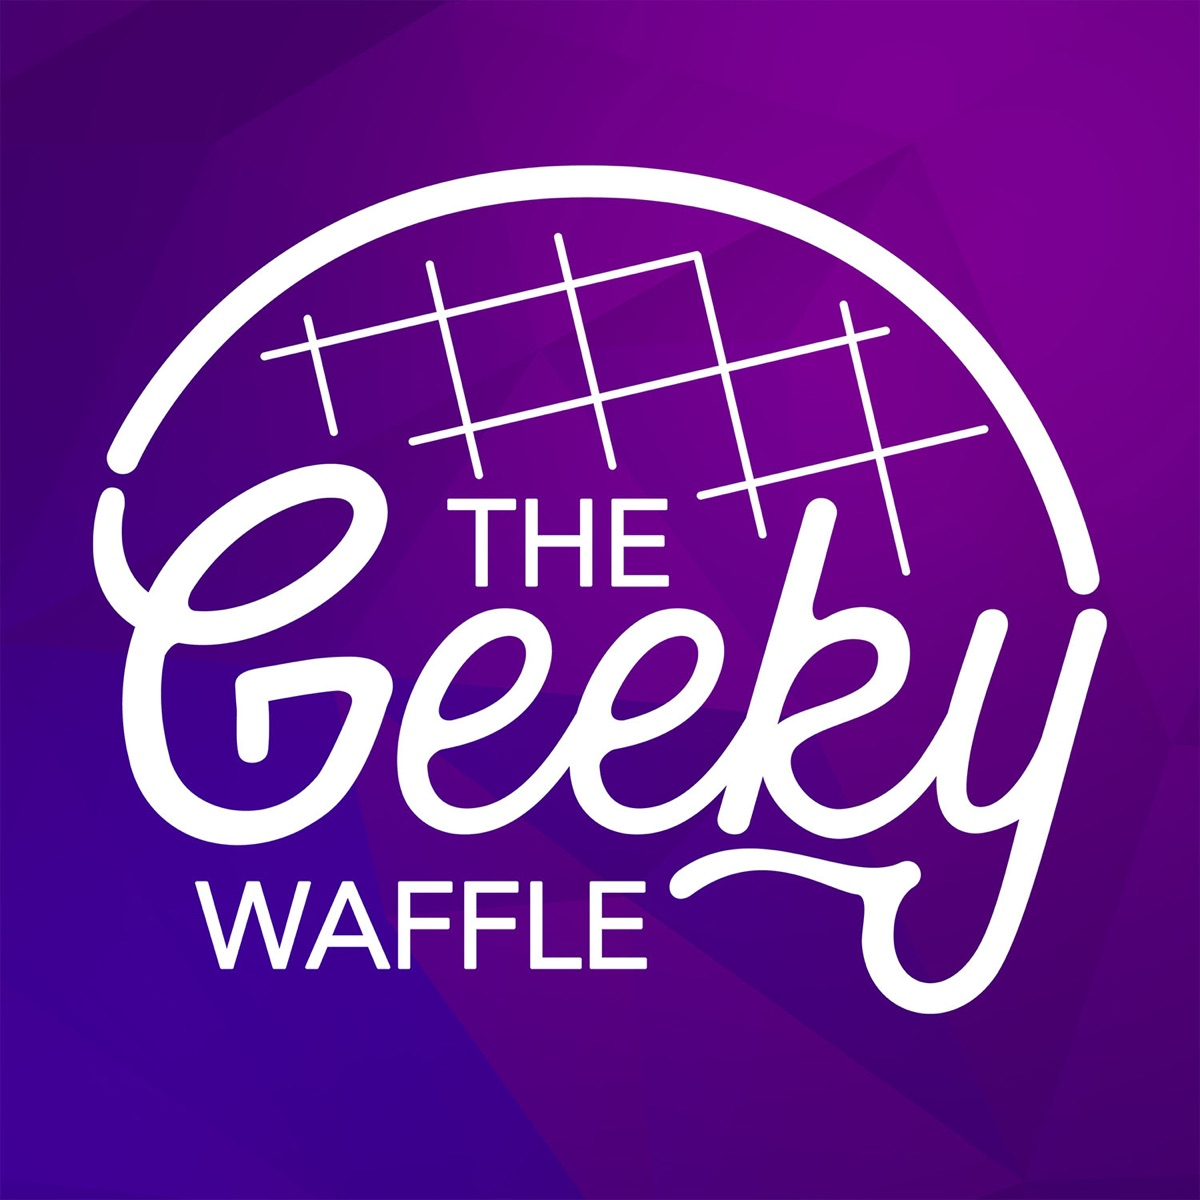 The Geeky Waffle